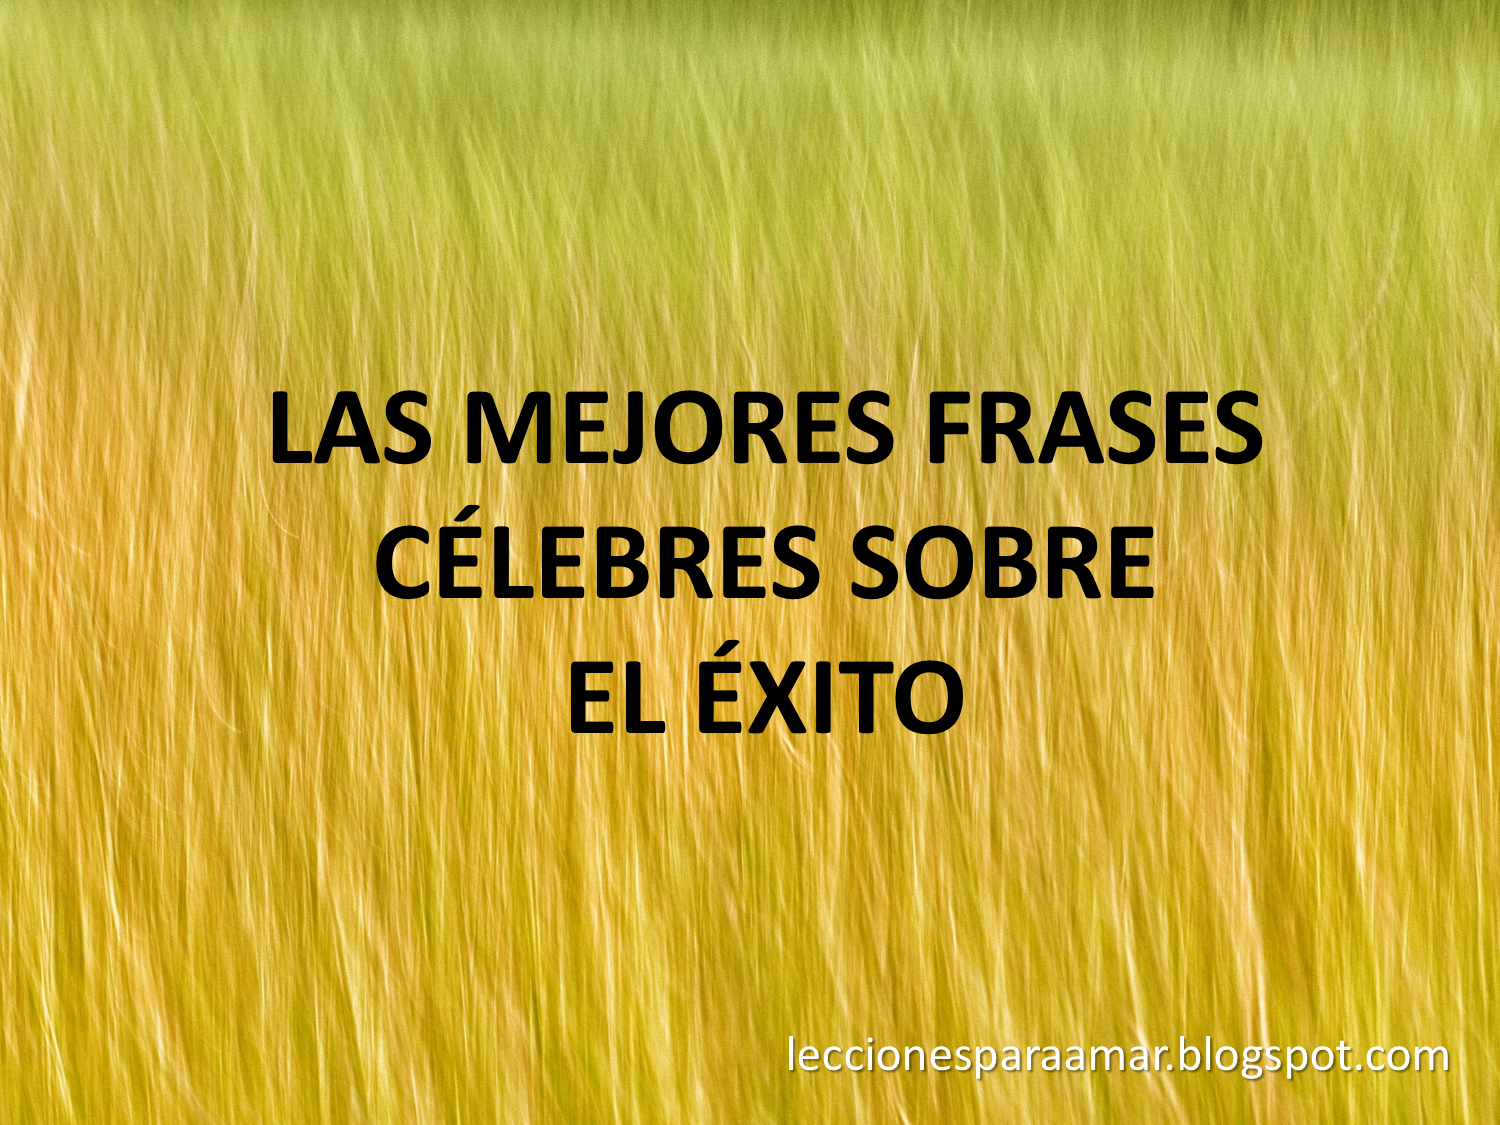 frases exito: